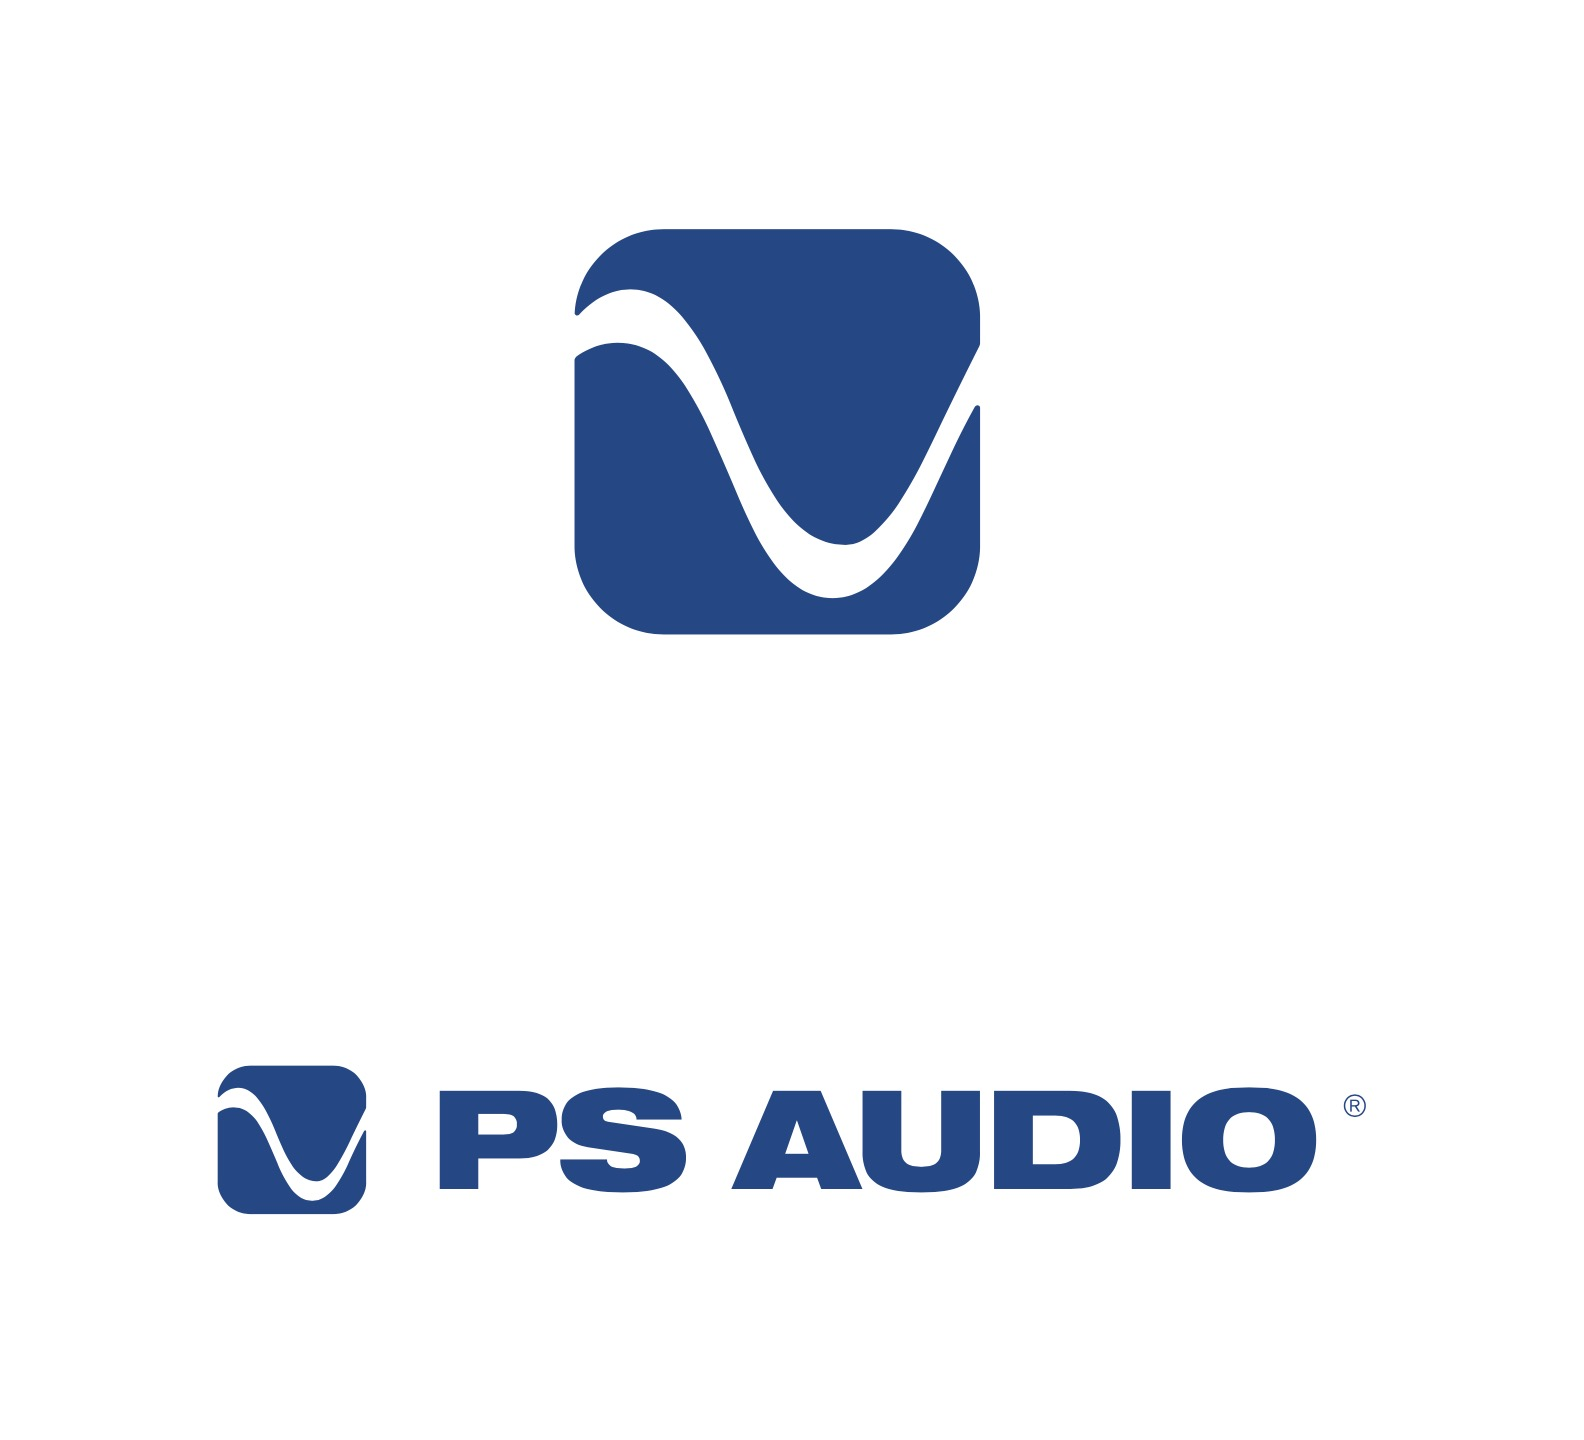 PS Audio New Logo Design